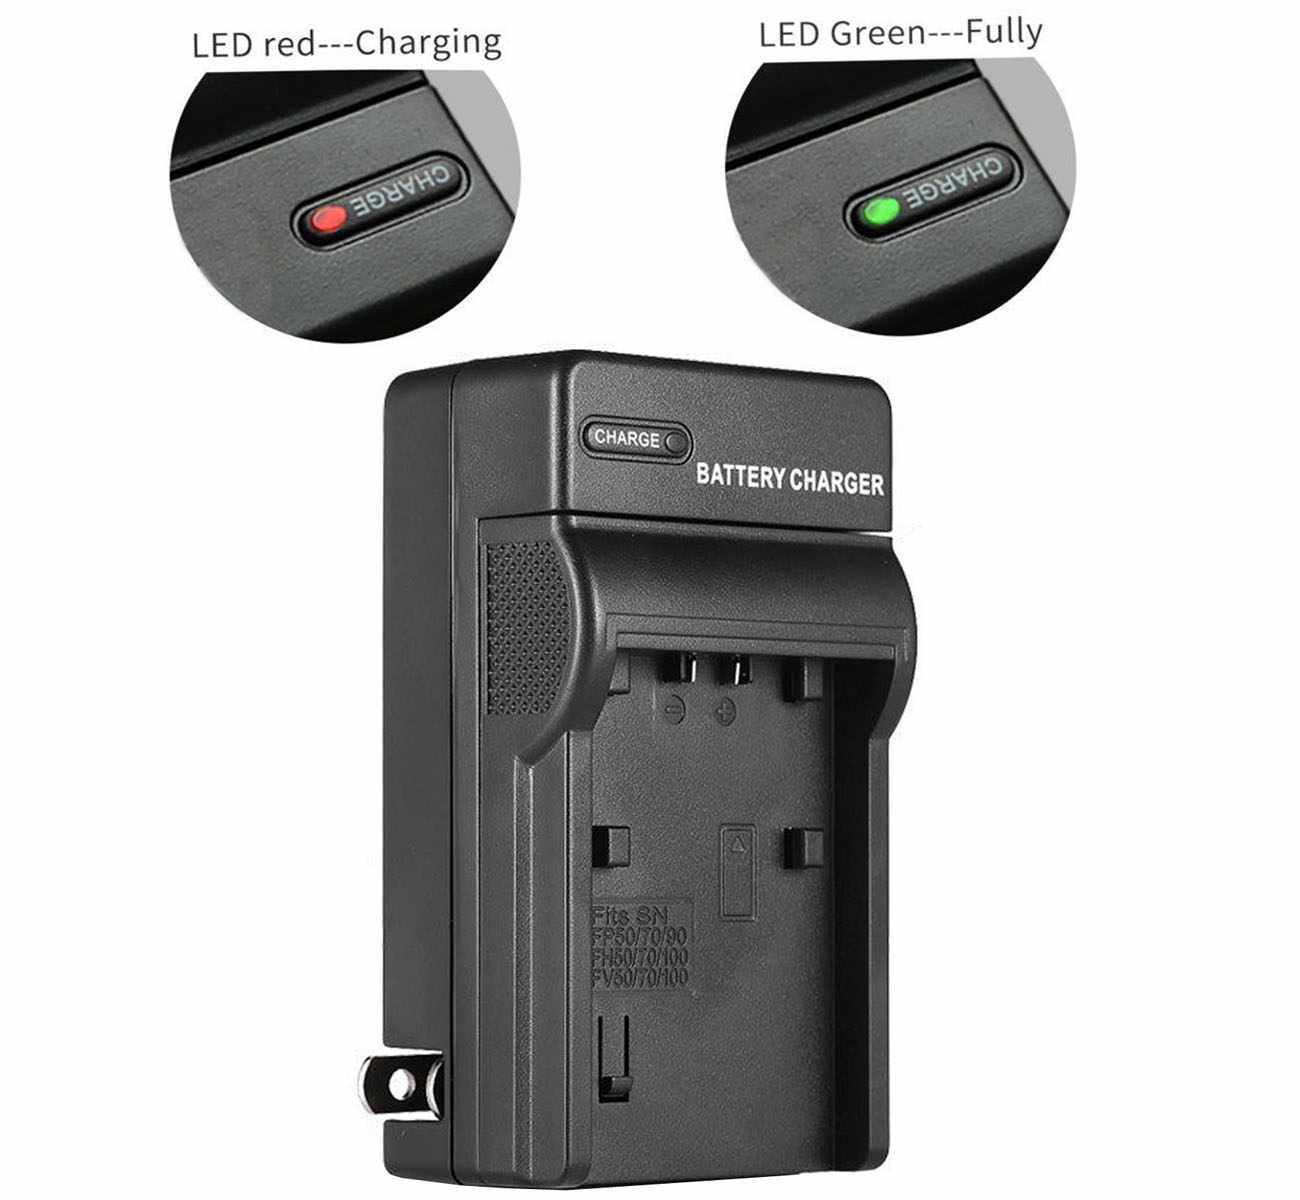 HDR-CX260VE HDR-CX270E HDR-CX280E Battery Charger for Sony HDR-CX250E HDR-CX290E Handycam Camcorder